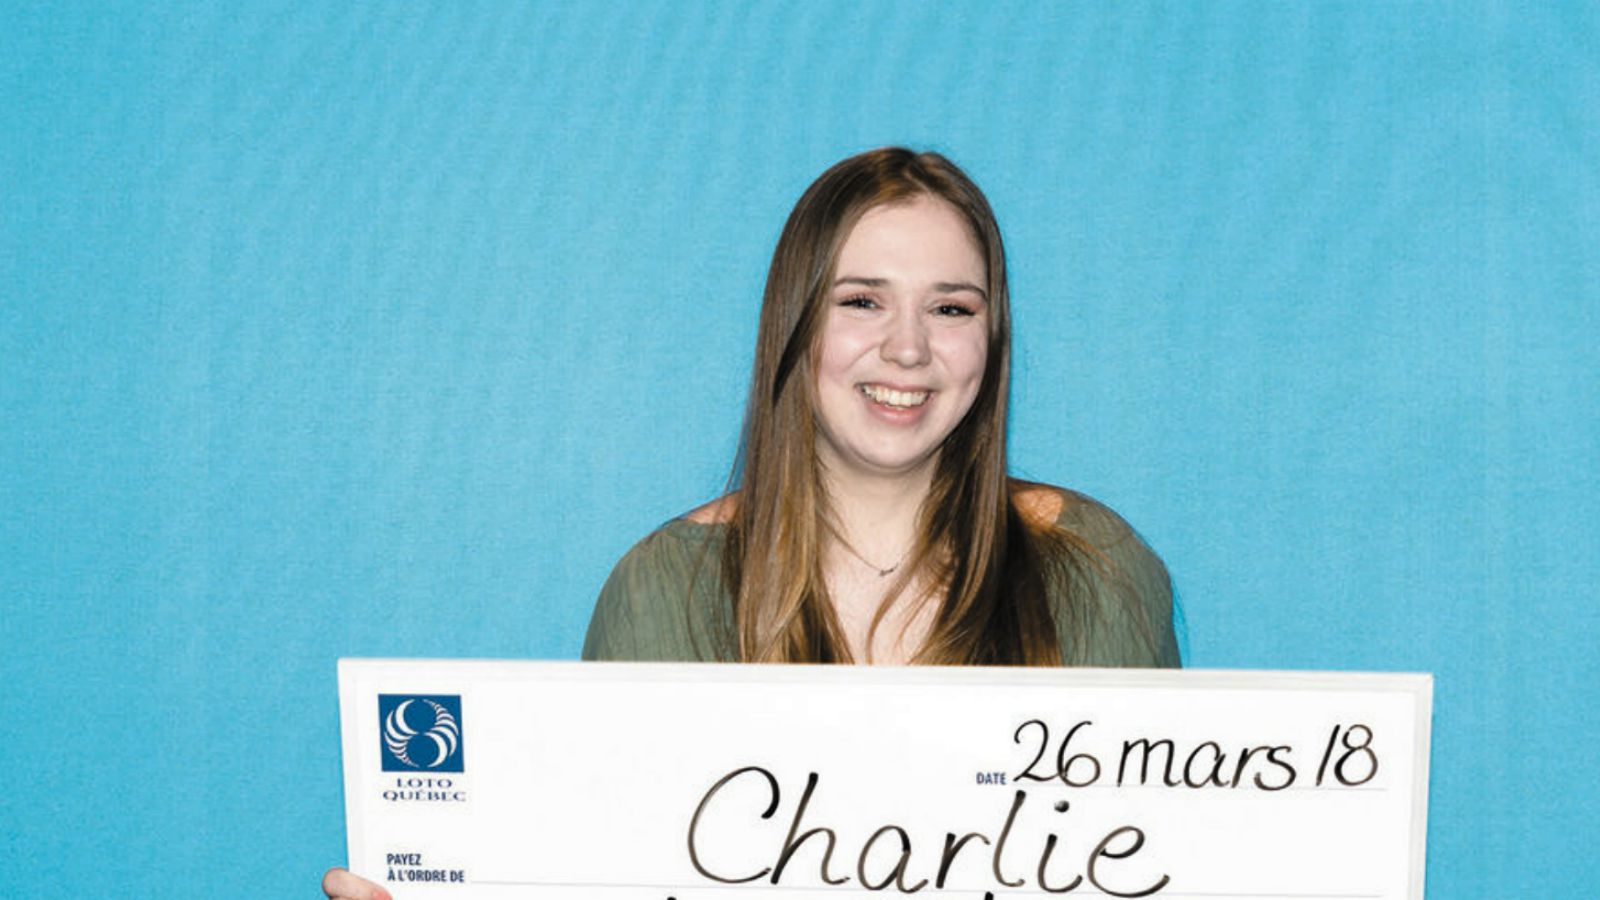 Canadian Teen Buys Her First Lottery Ticket on Her 18th Birthday and Wins Big!